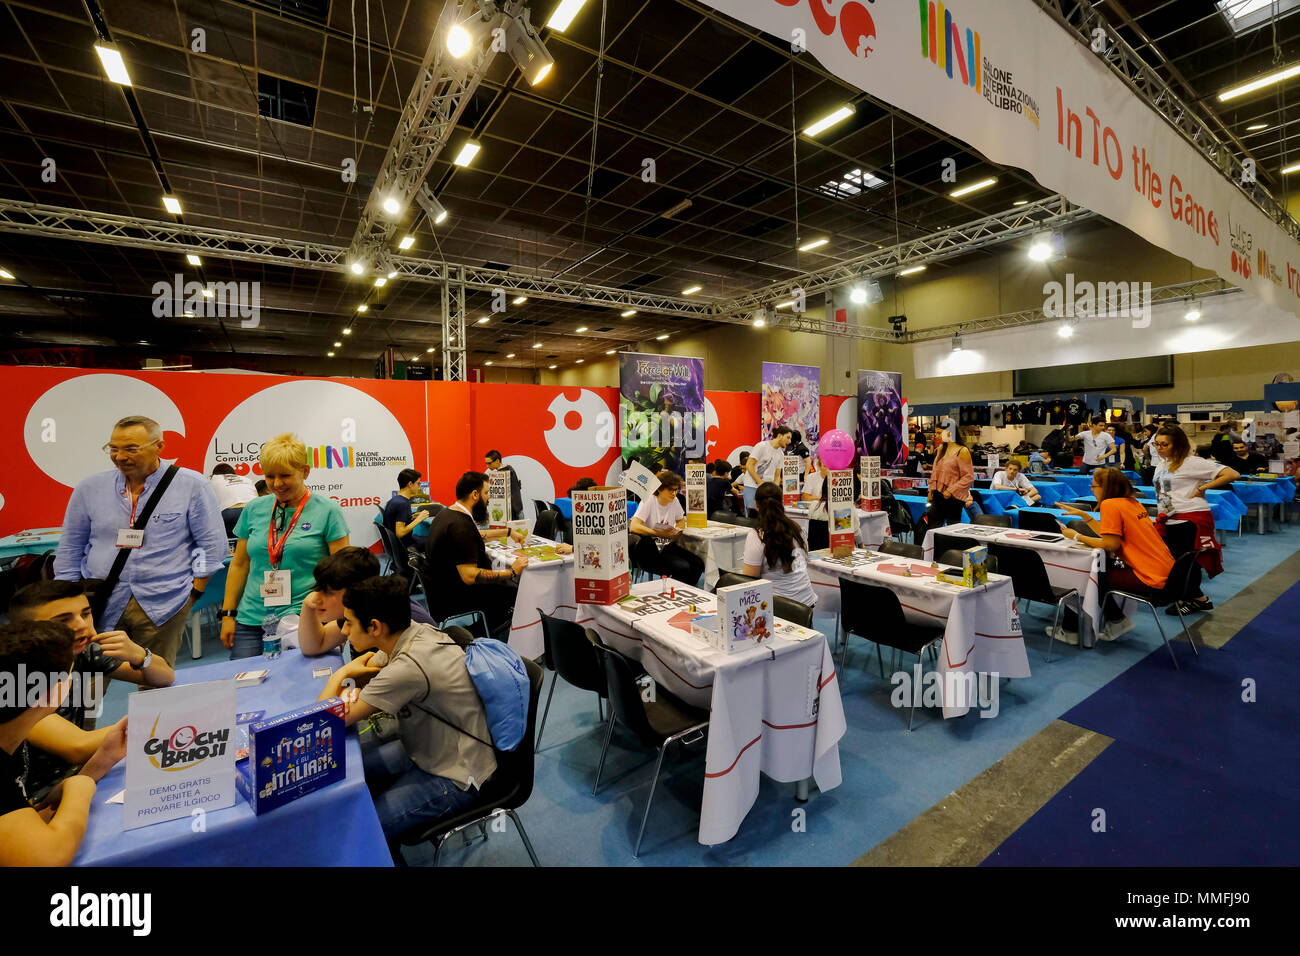 Turin, Piedmont, Italy, 10th May, 2018. International Book fair 2018,first day.Lucca comics and games stand Credit: RENATO VALTERZA/Alamy Live News - Stock Image